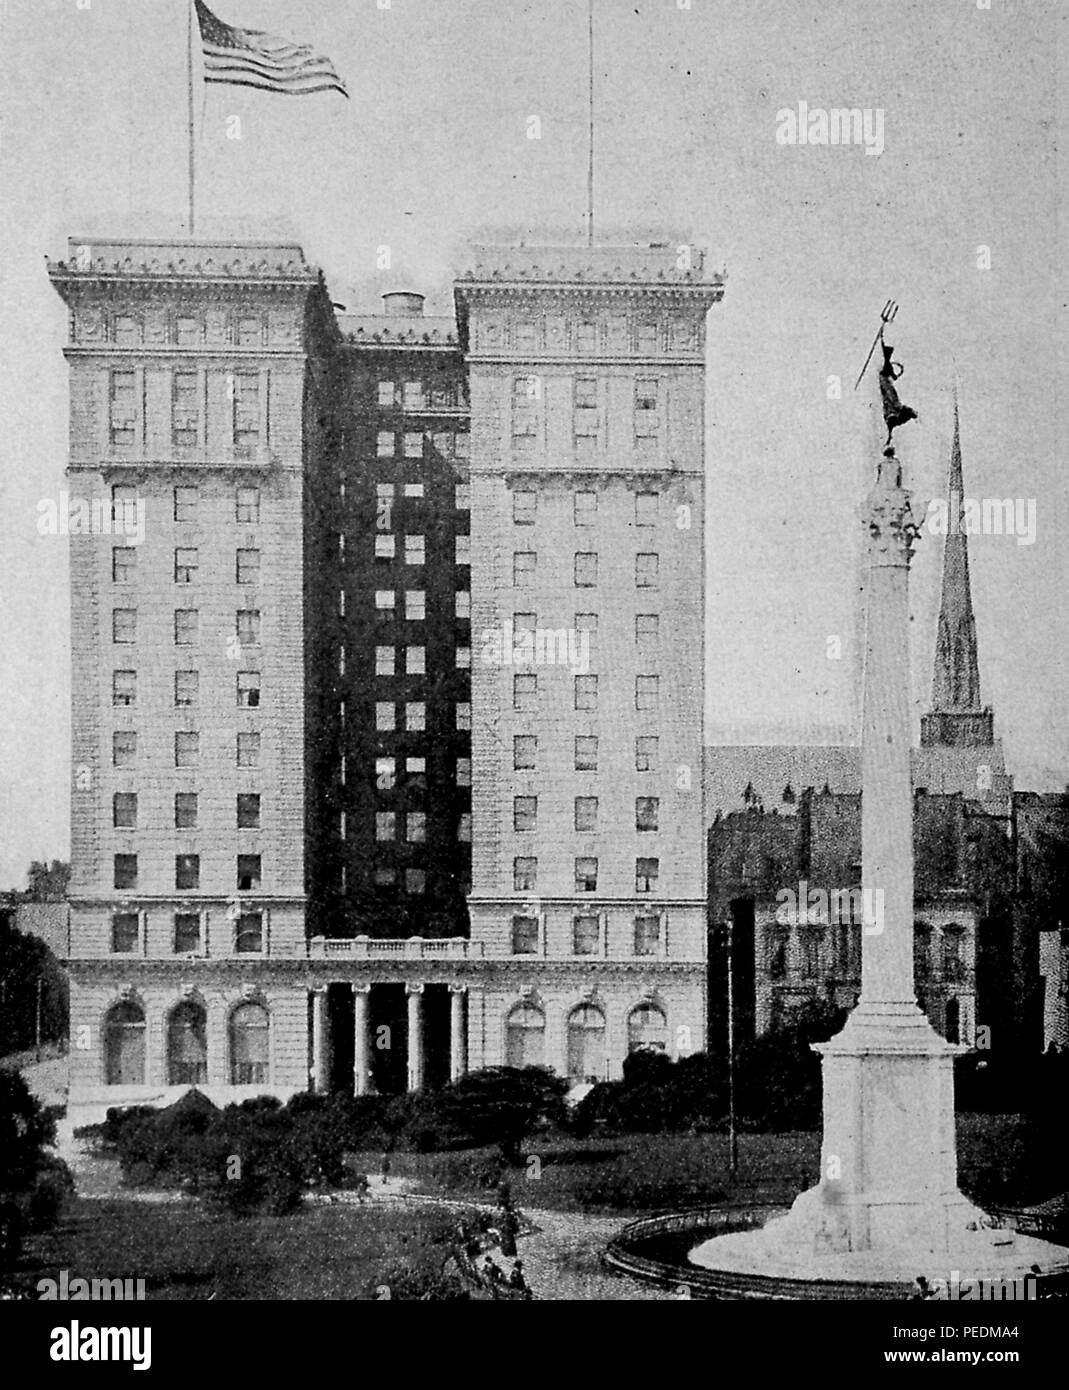 Black and white photograph showing the St Francis Hotel, with trees and the Dewey Monument in the foreground, from the volume 'The History of the San Francisco Disaster and Mount Vesuvius Horror, ' authored by Charles Eugene Banks, and Opie Percival Read, and published in Chicago, 1906. Courtesy Internet Archive.  () - Stock Image